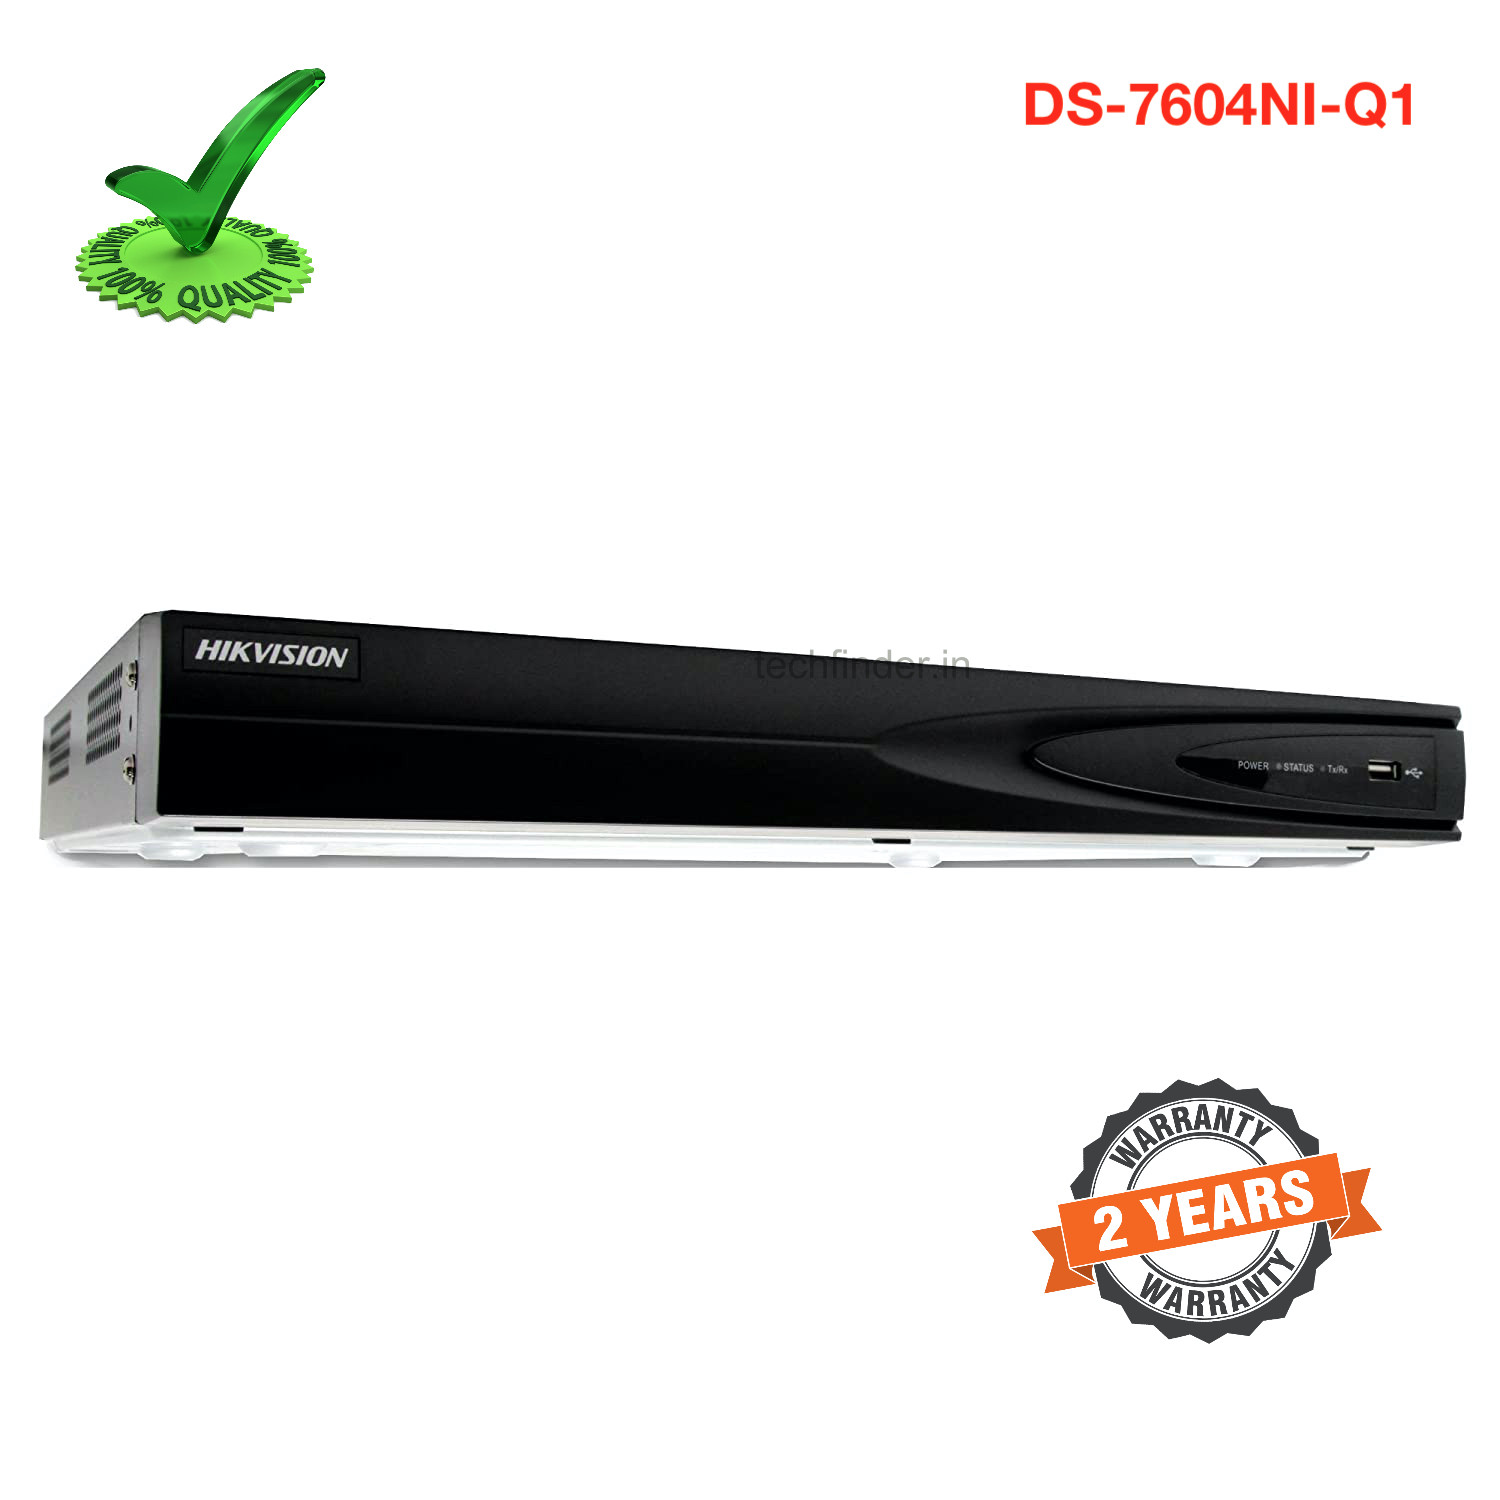 Hikvision DS-7604NI-Q1 Series 4ch support 4k Nvr